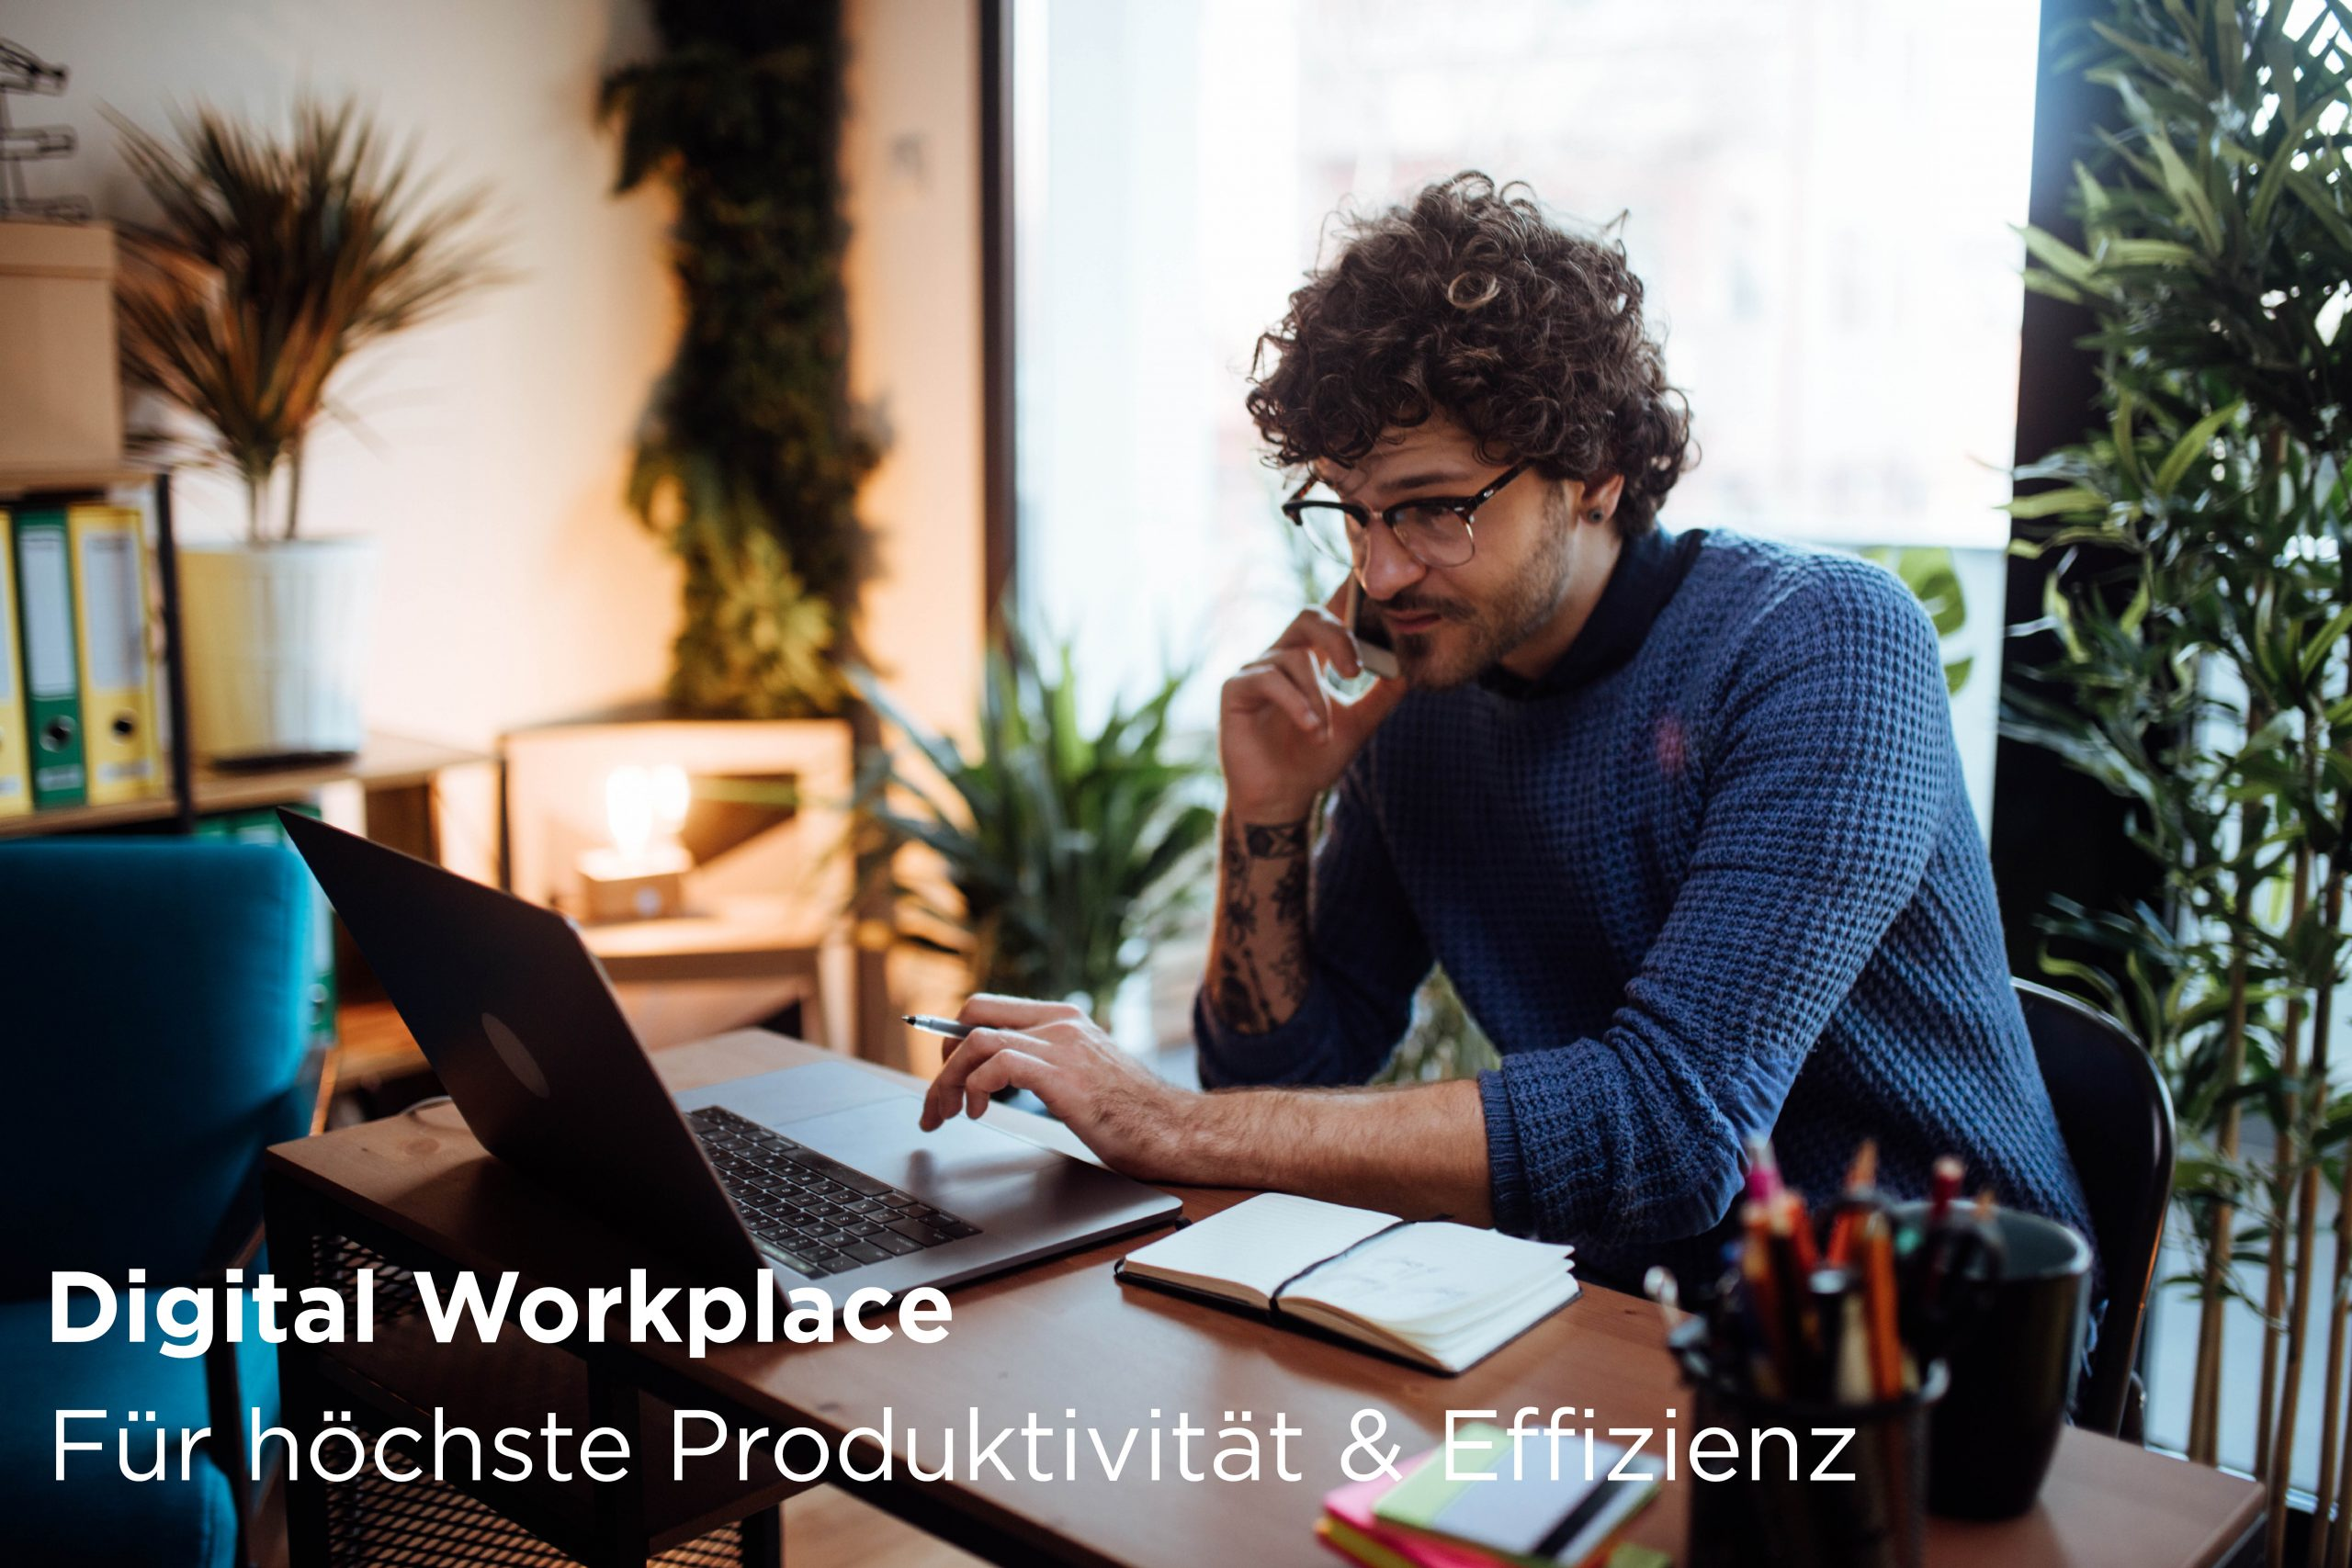 Hybrid Working. Digital Workplace. Man working from home.